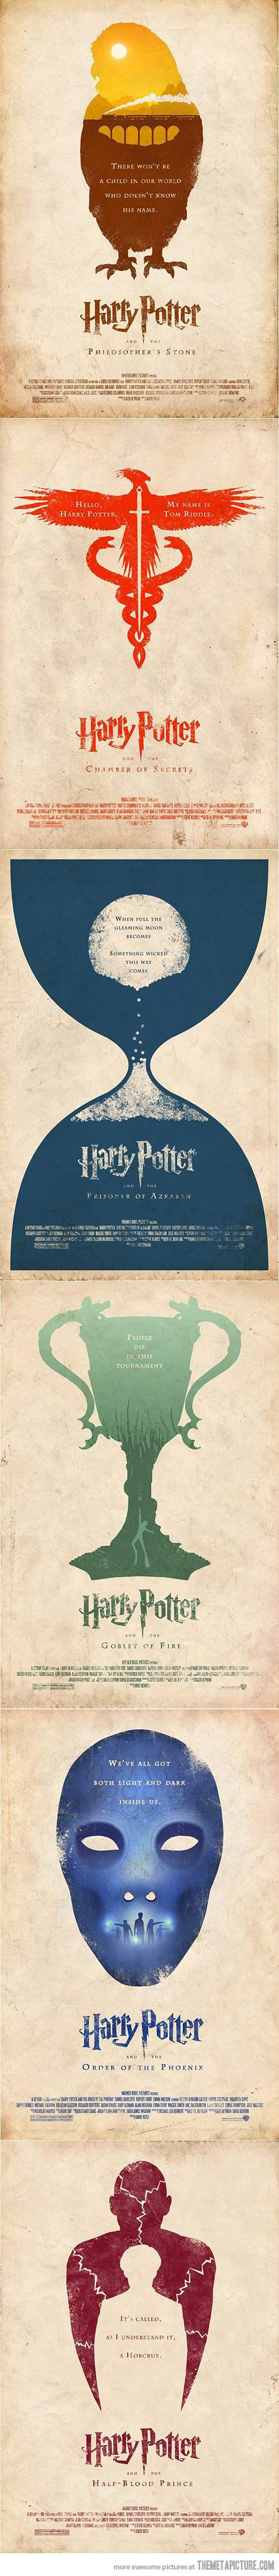 Minimalist Poster Versions Of Harry Potter Movies. Absolutely beautiful.